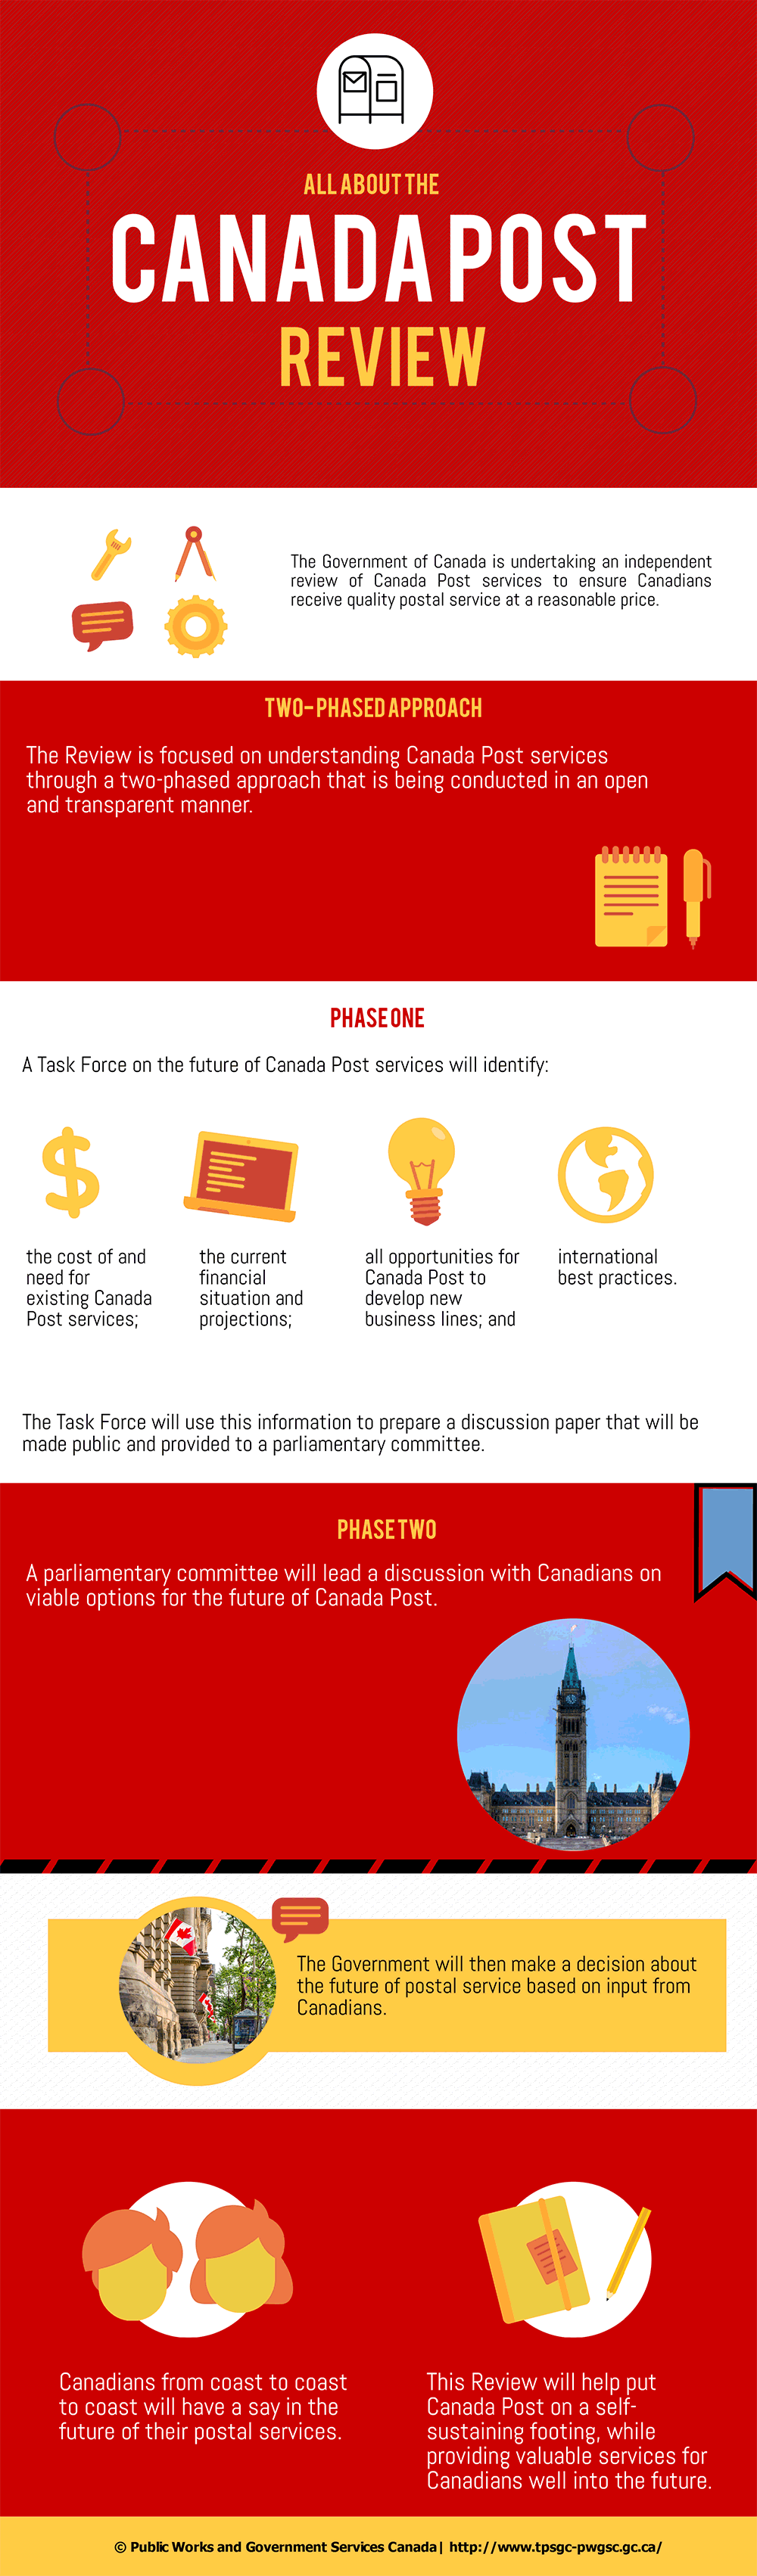 Infographic: All about the Canada post review